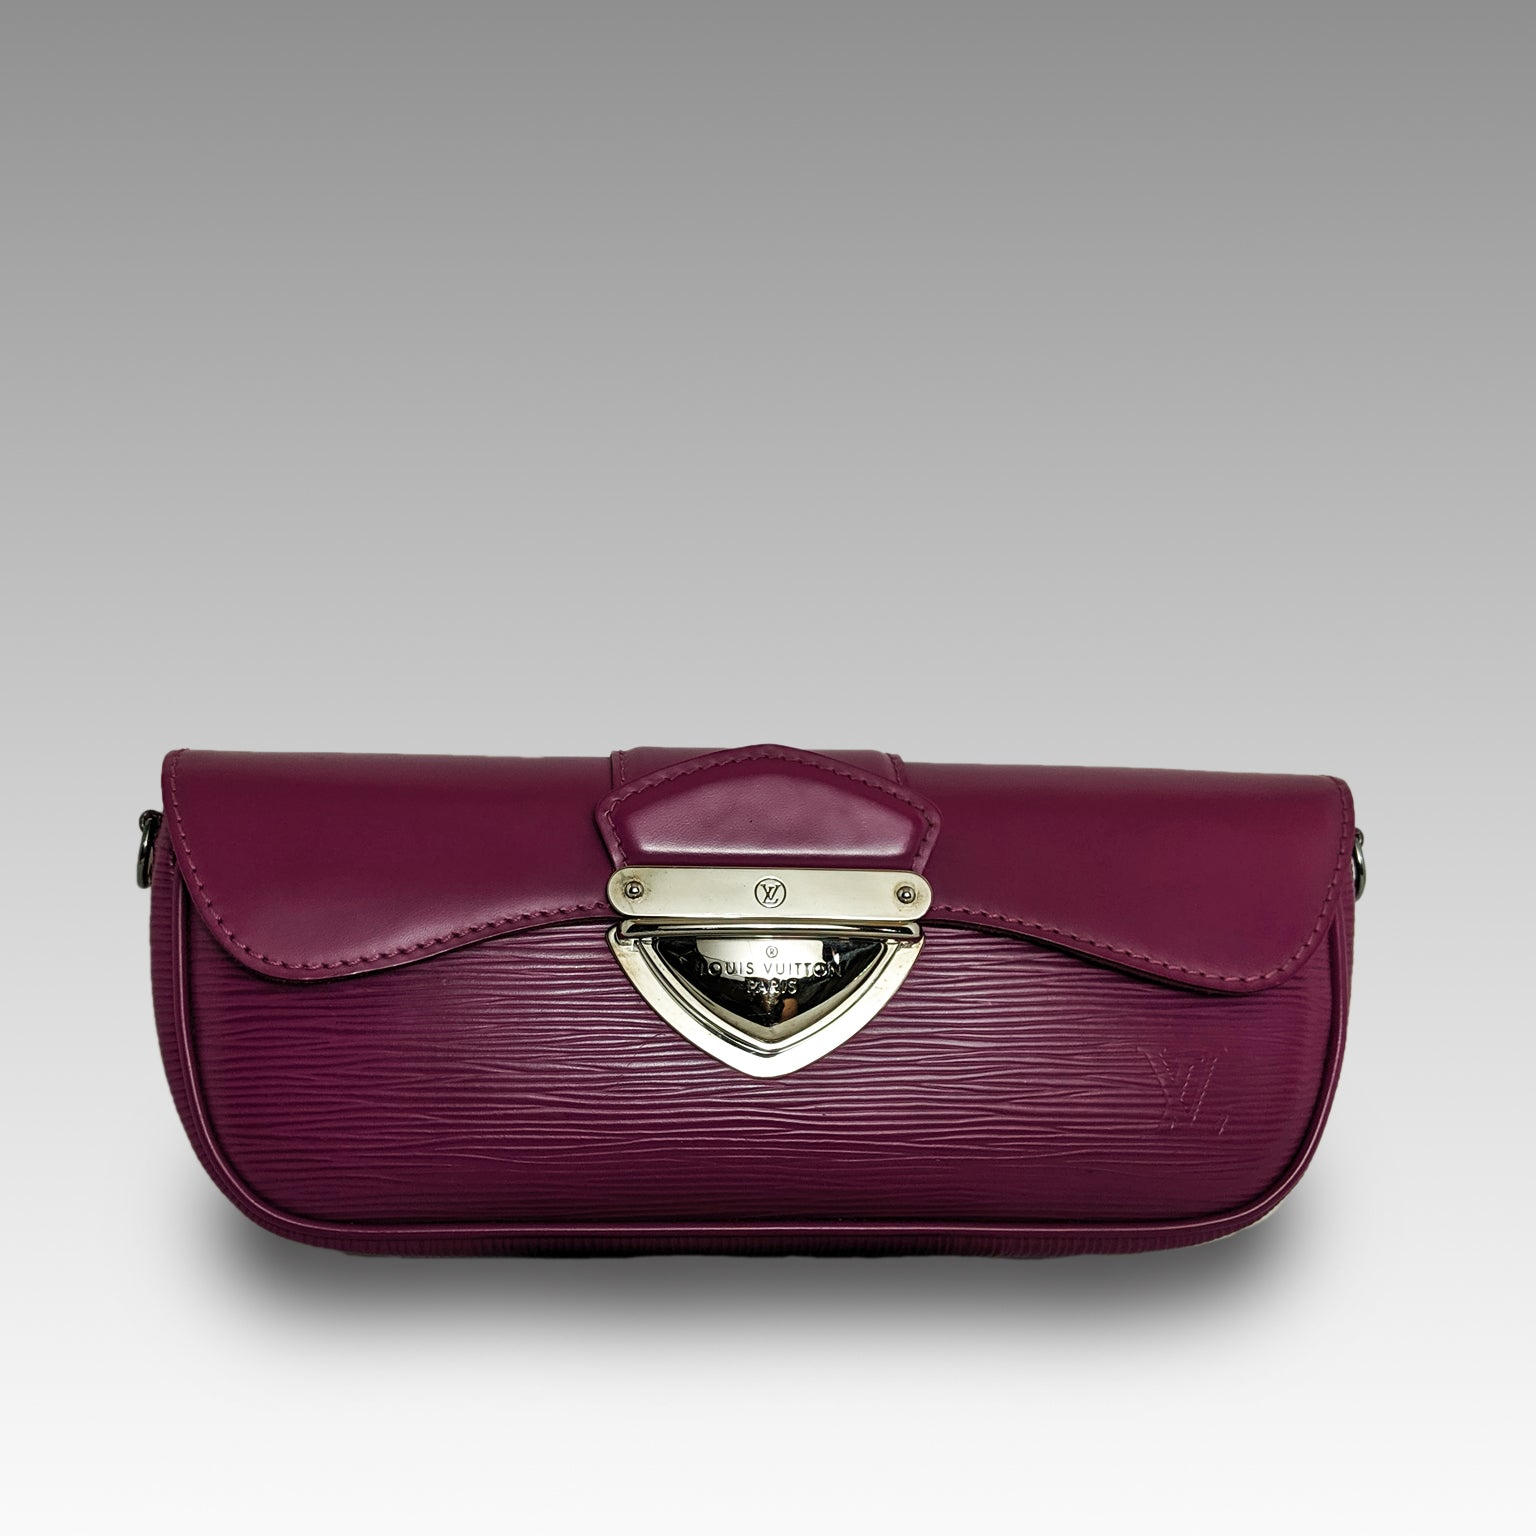 Louis Vuitton, Louis Vuitton Shoulder Bag in Purple Epi Leather - CHLOEZACH